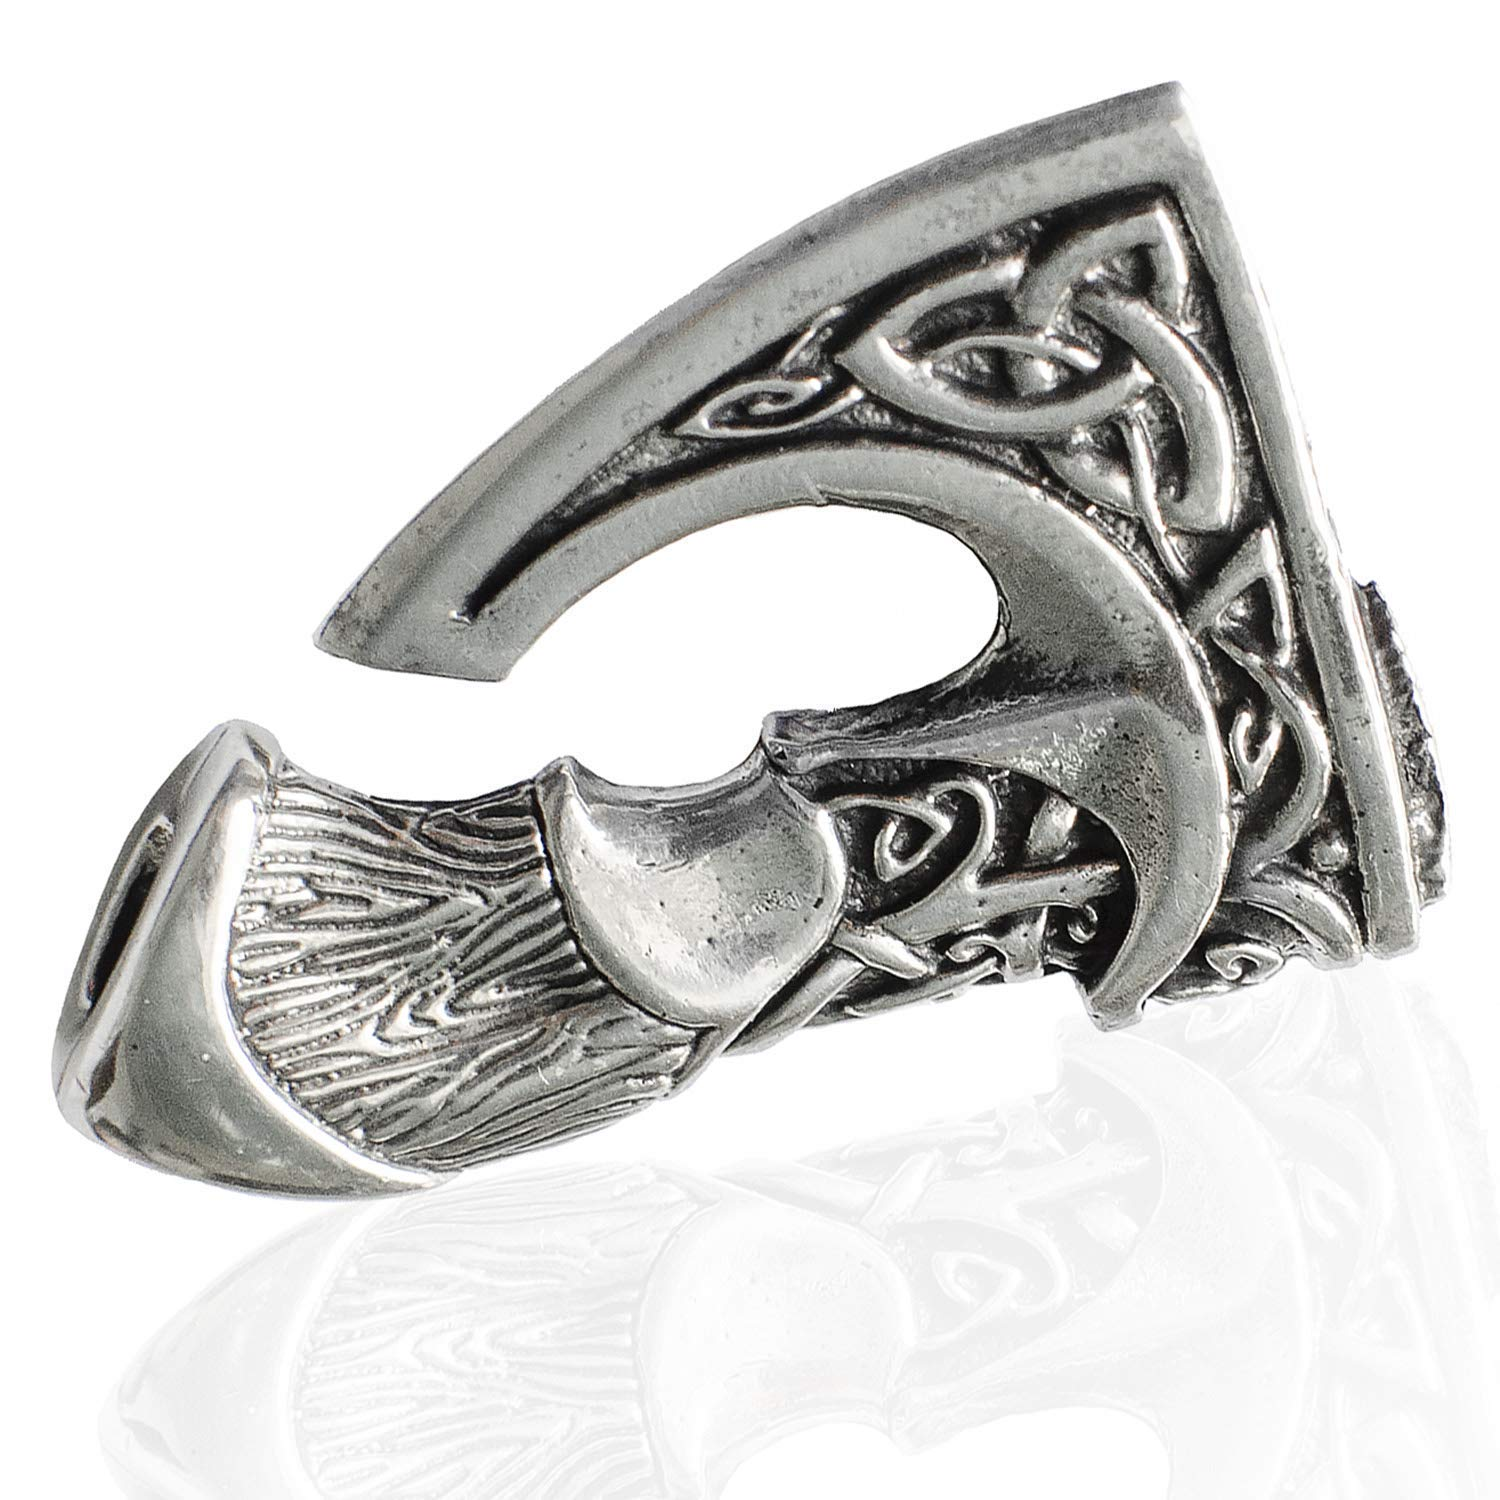 Celtic Axe - Custom Paracord Pendant NEW before selling and for Safety trust Men Women Paracor